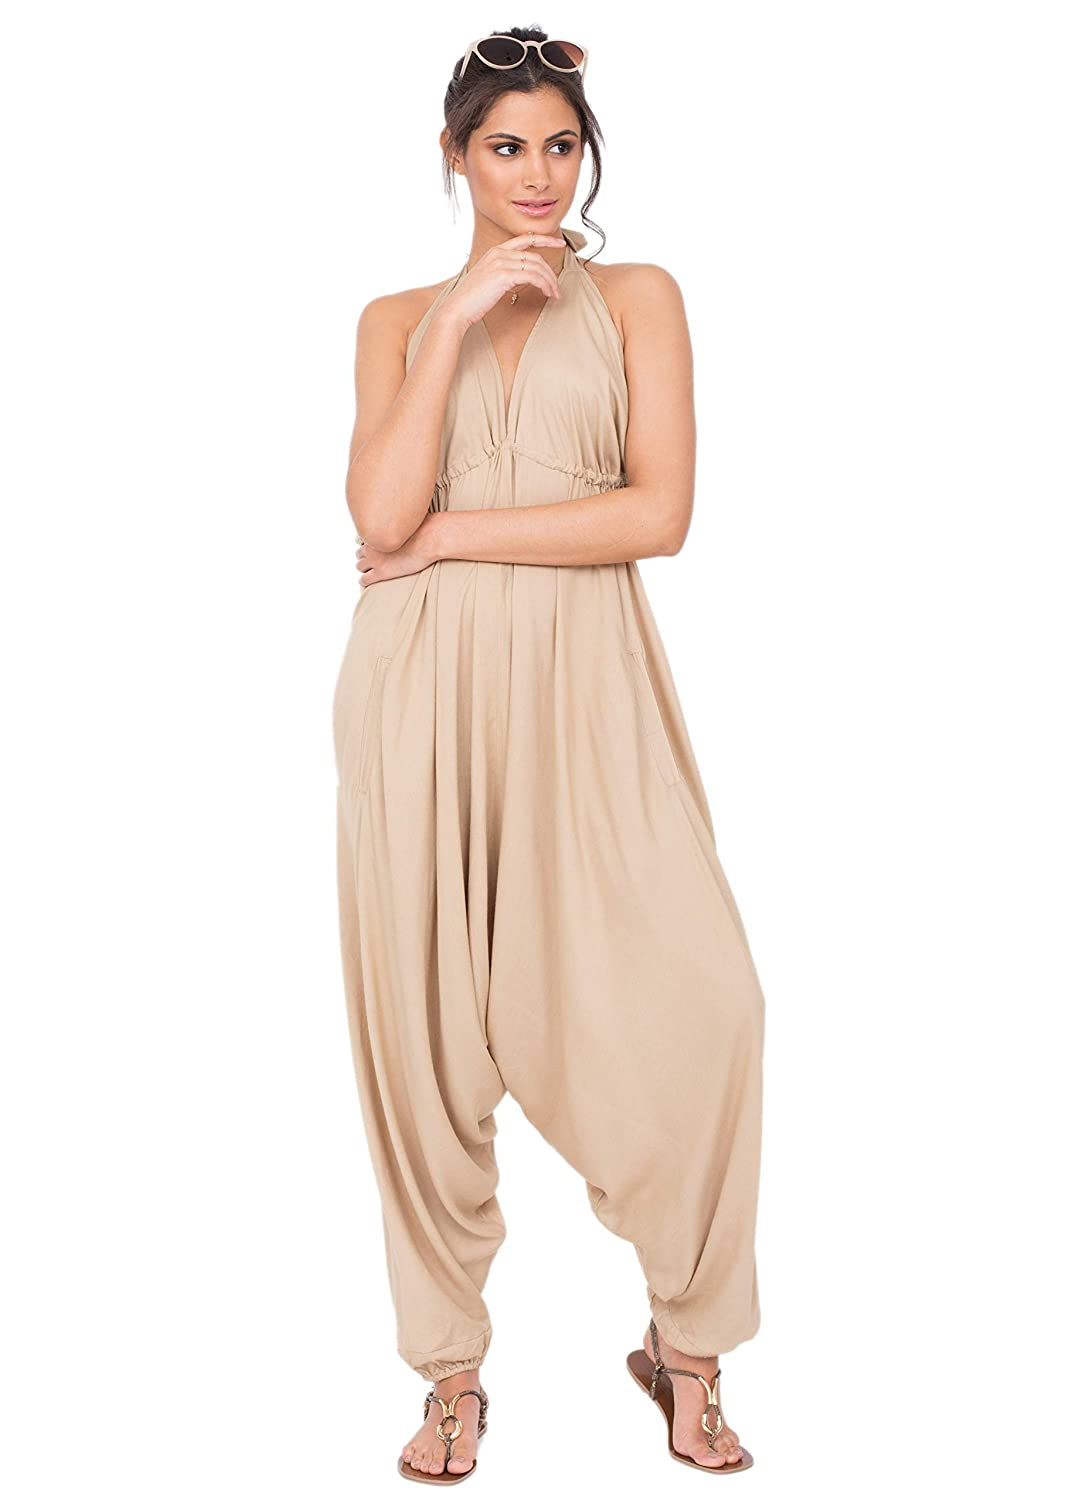 a40365fa6a40 Amazon.com  likemary Harem Jumpsuit Halter Hareem Holiday Romper for Women  Biscuit Beige  Clothing